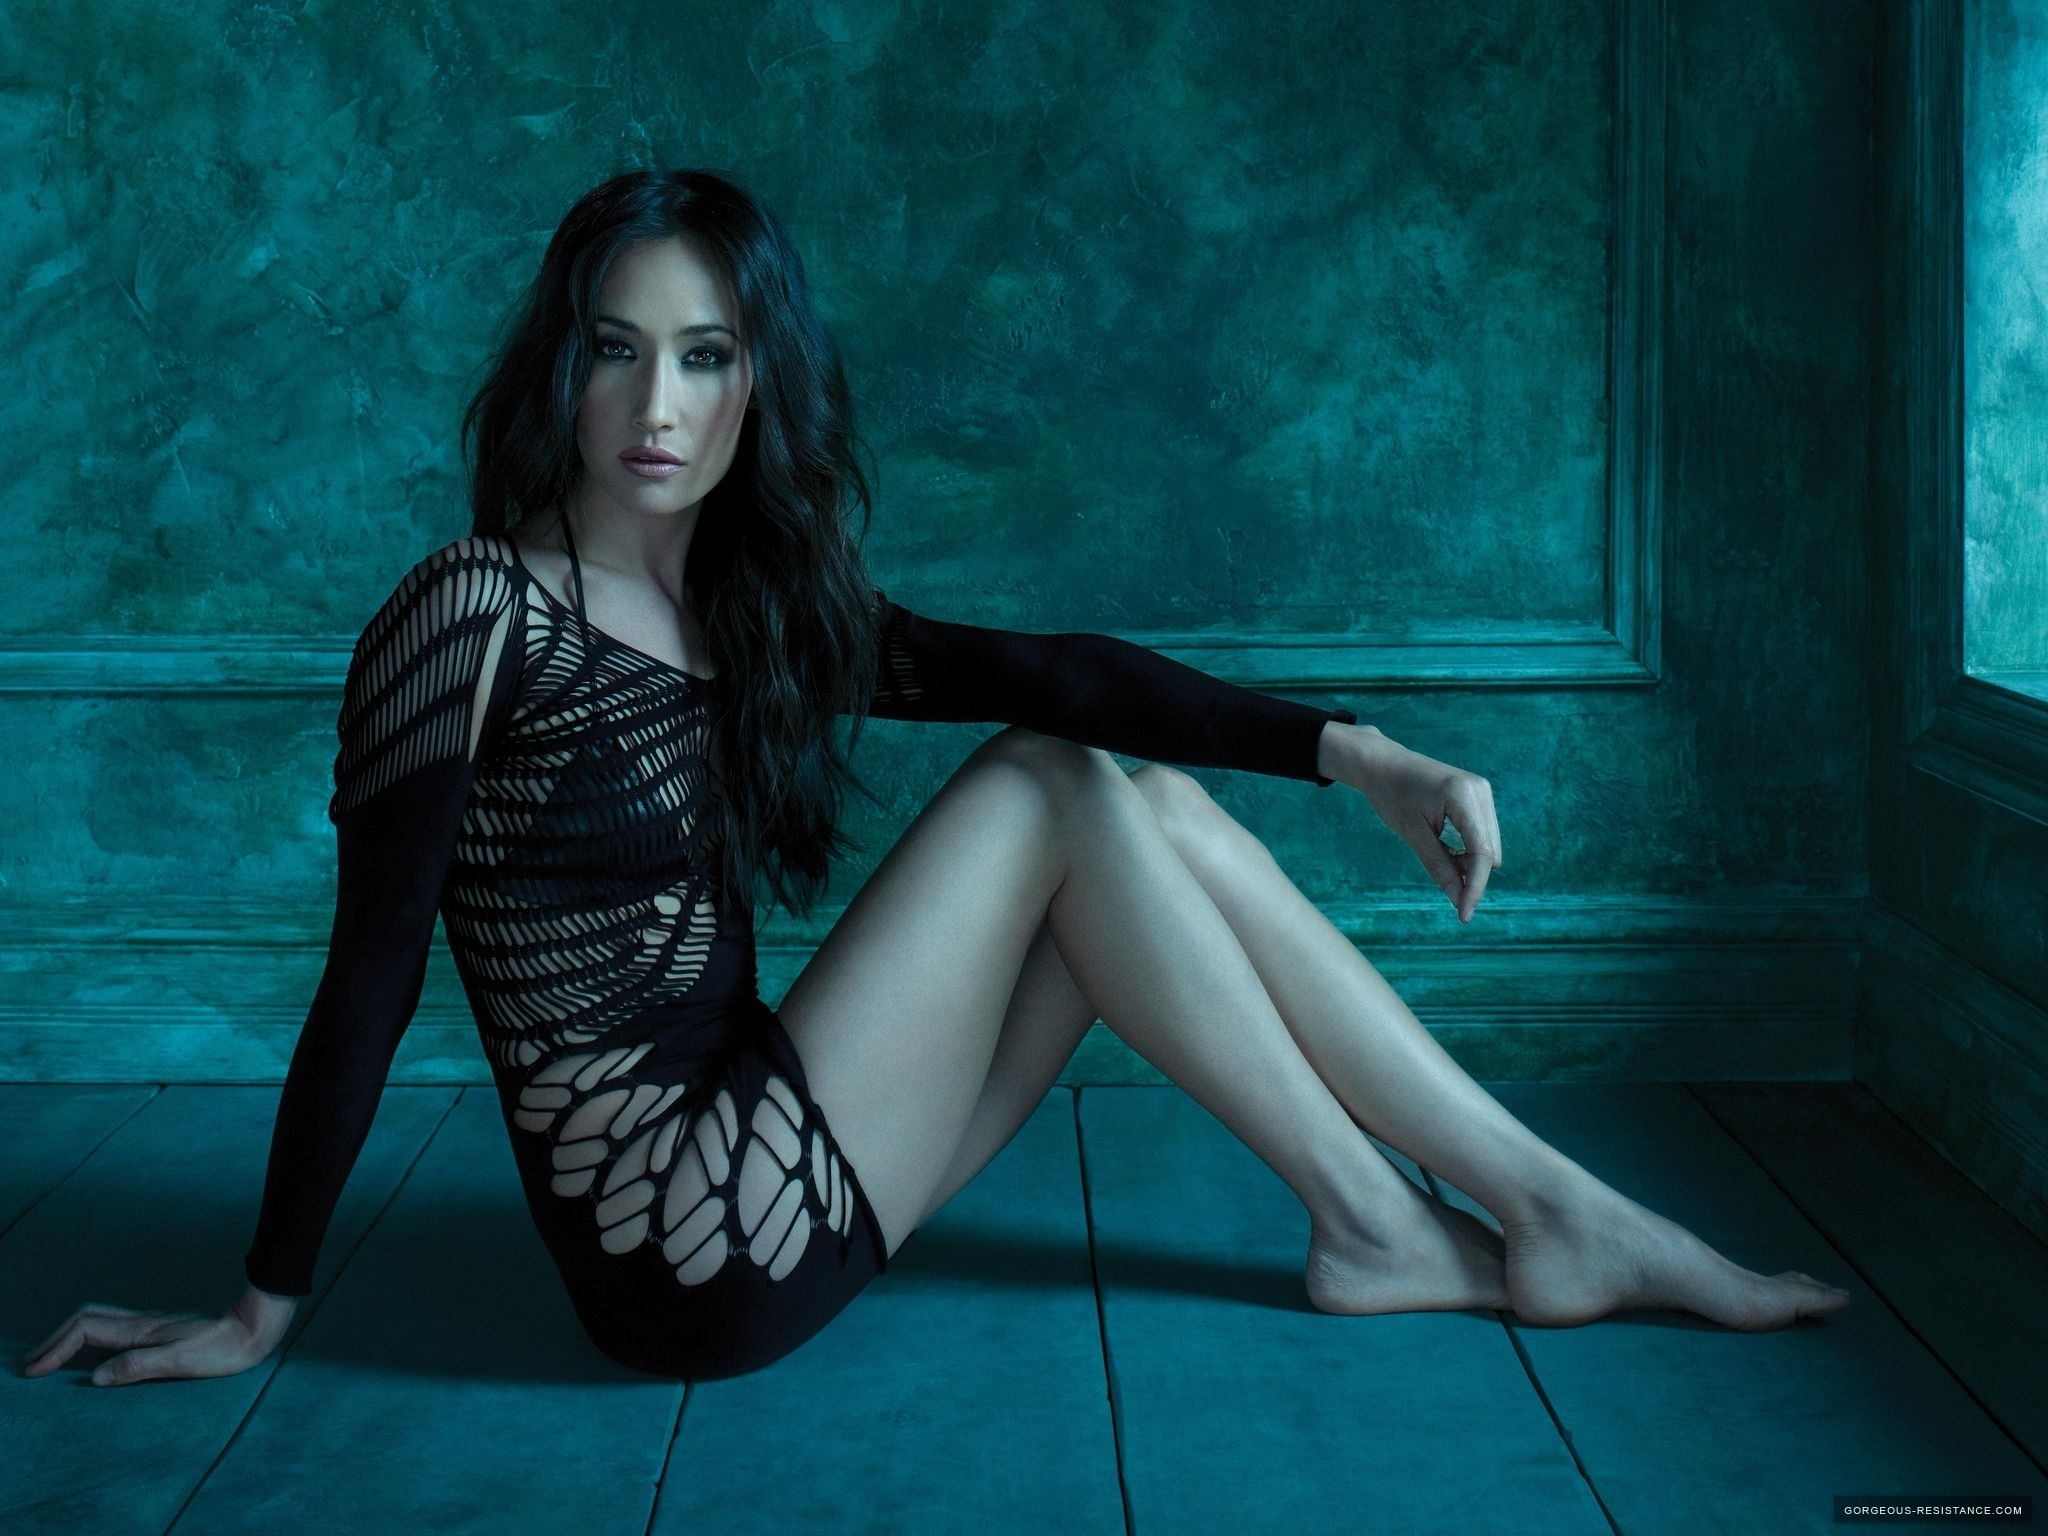 2048x1536 - Maggie Q Wallpapers 29